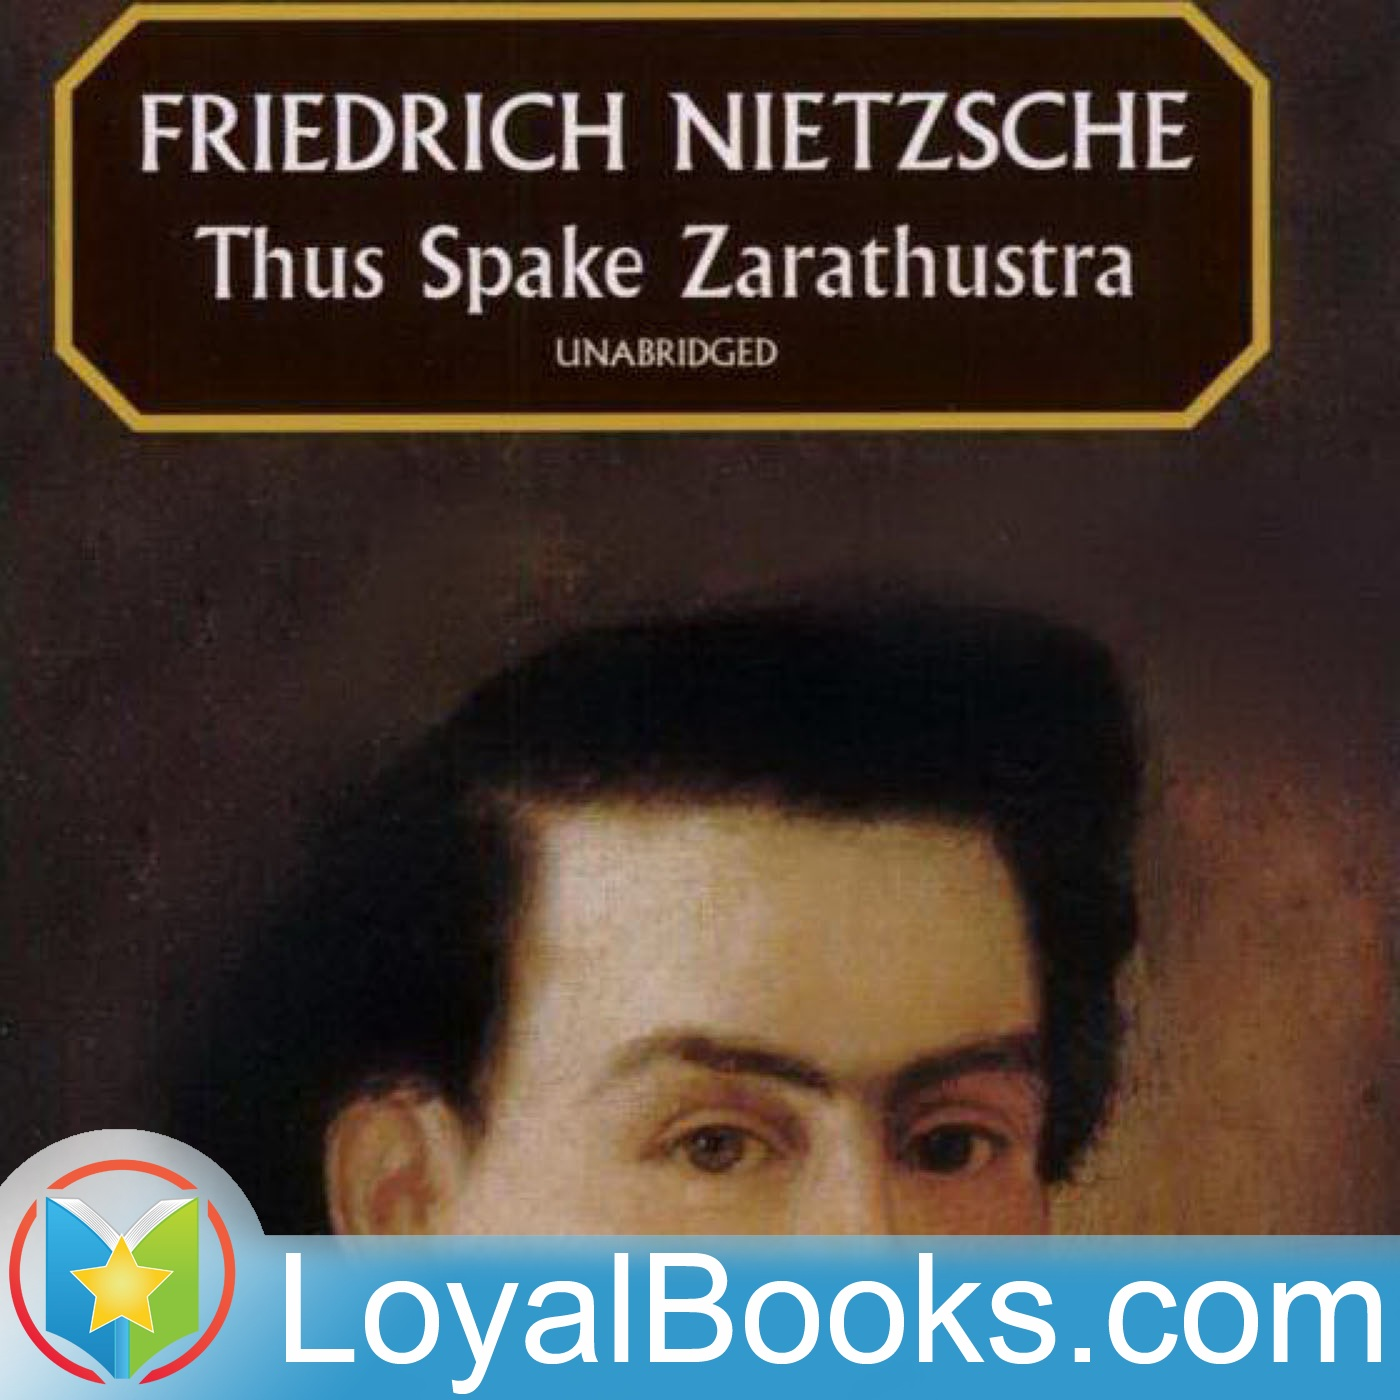 <![CDATA[Thus Spake Zarathustra: A Book for All and None by Friedrich Nietzsche]]>